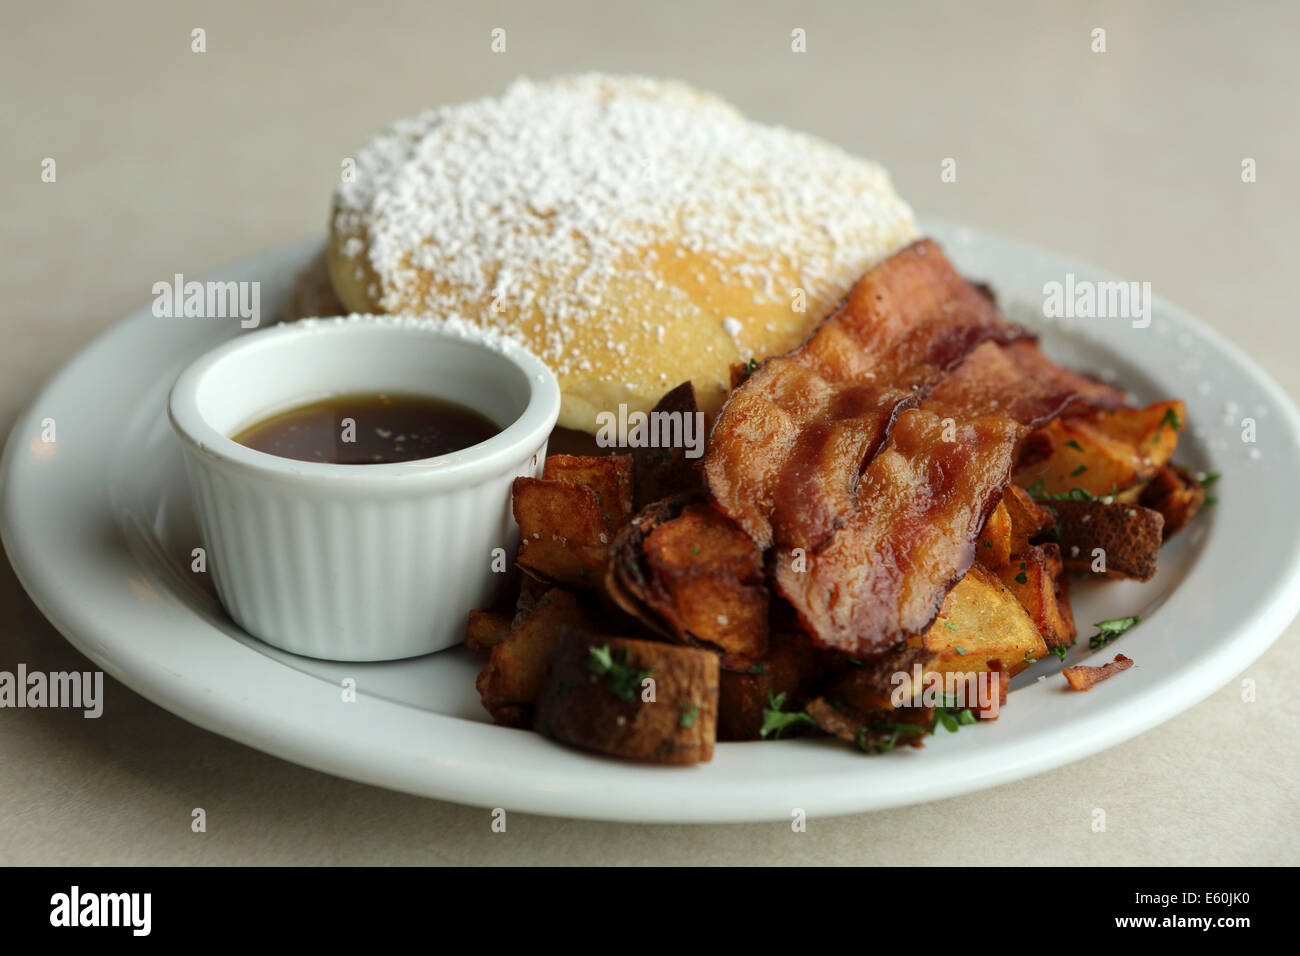 A breakfast of pancakes, crispy bacon, potatoes and maple syrup served in Saskatchewan, Canada. - Stock Image